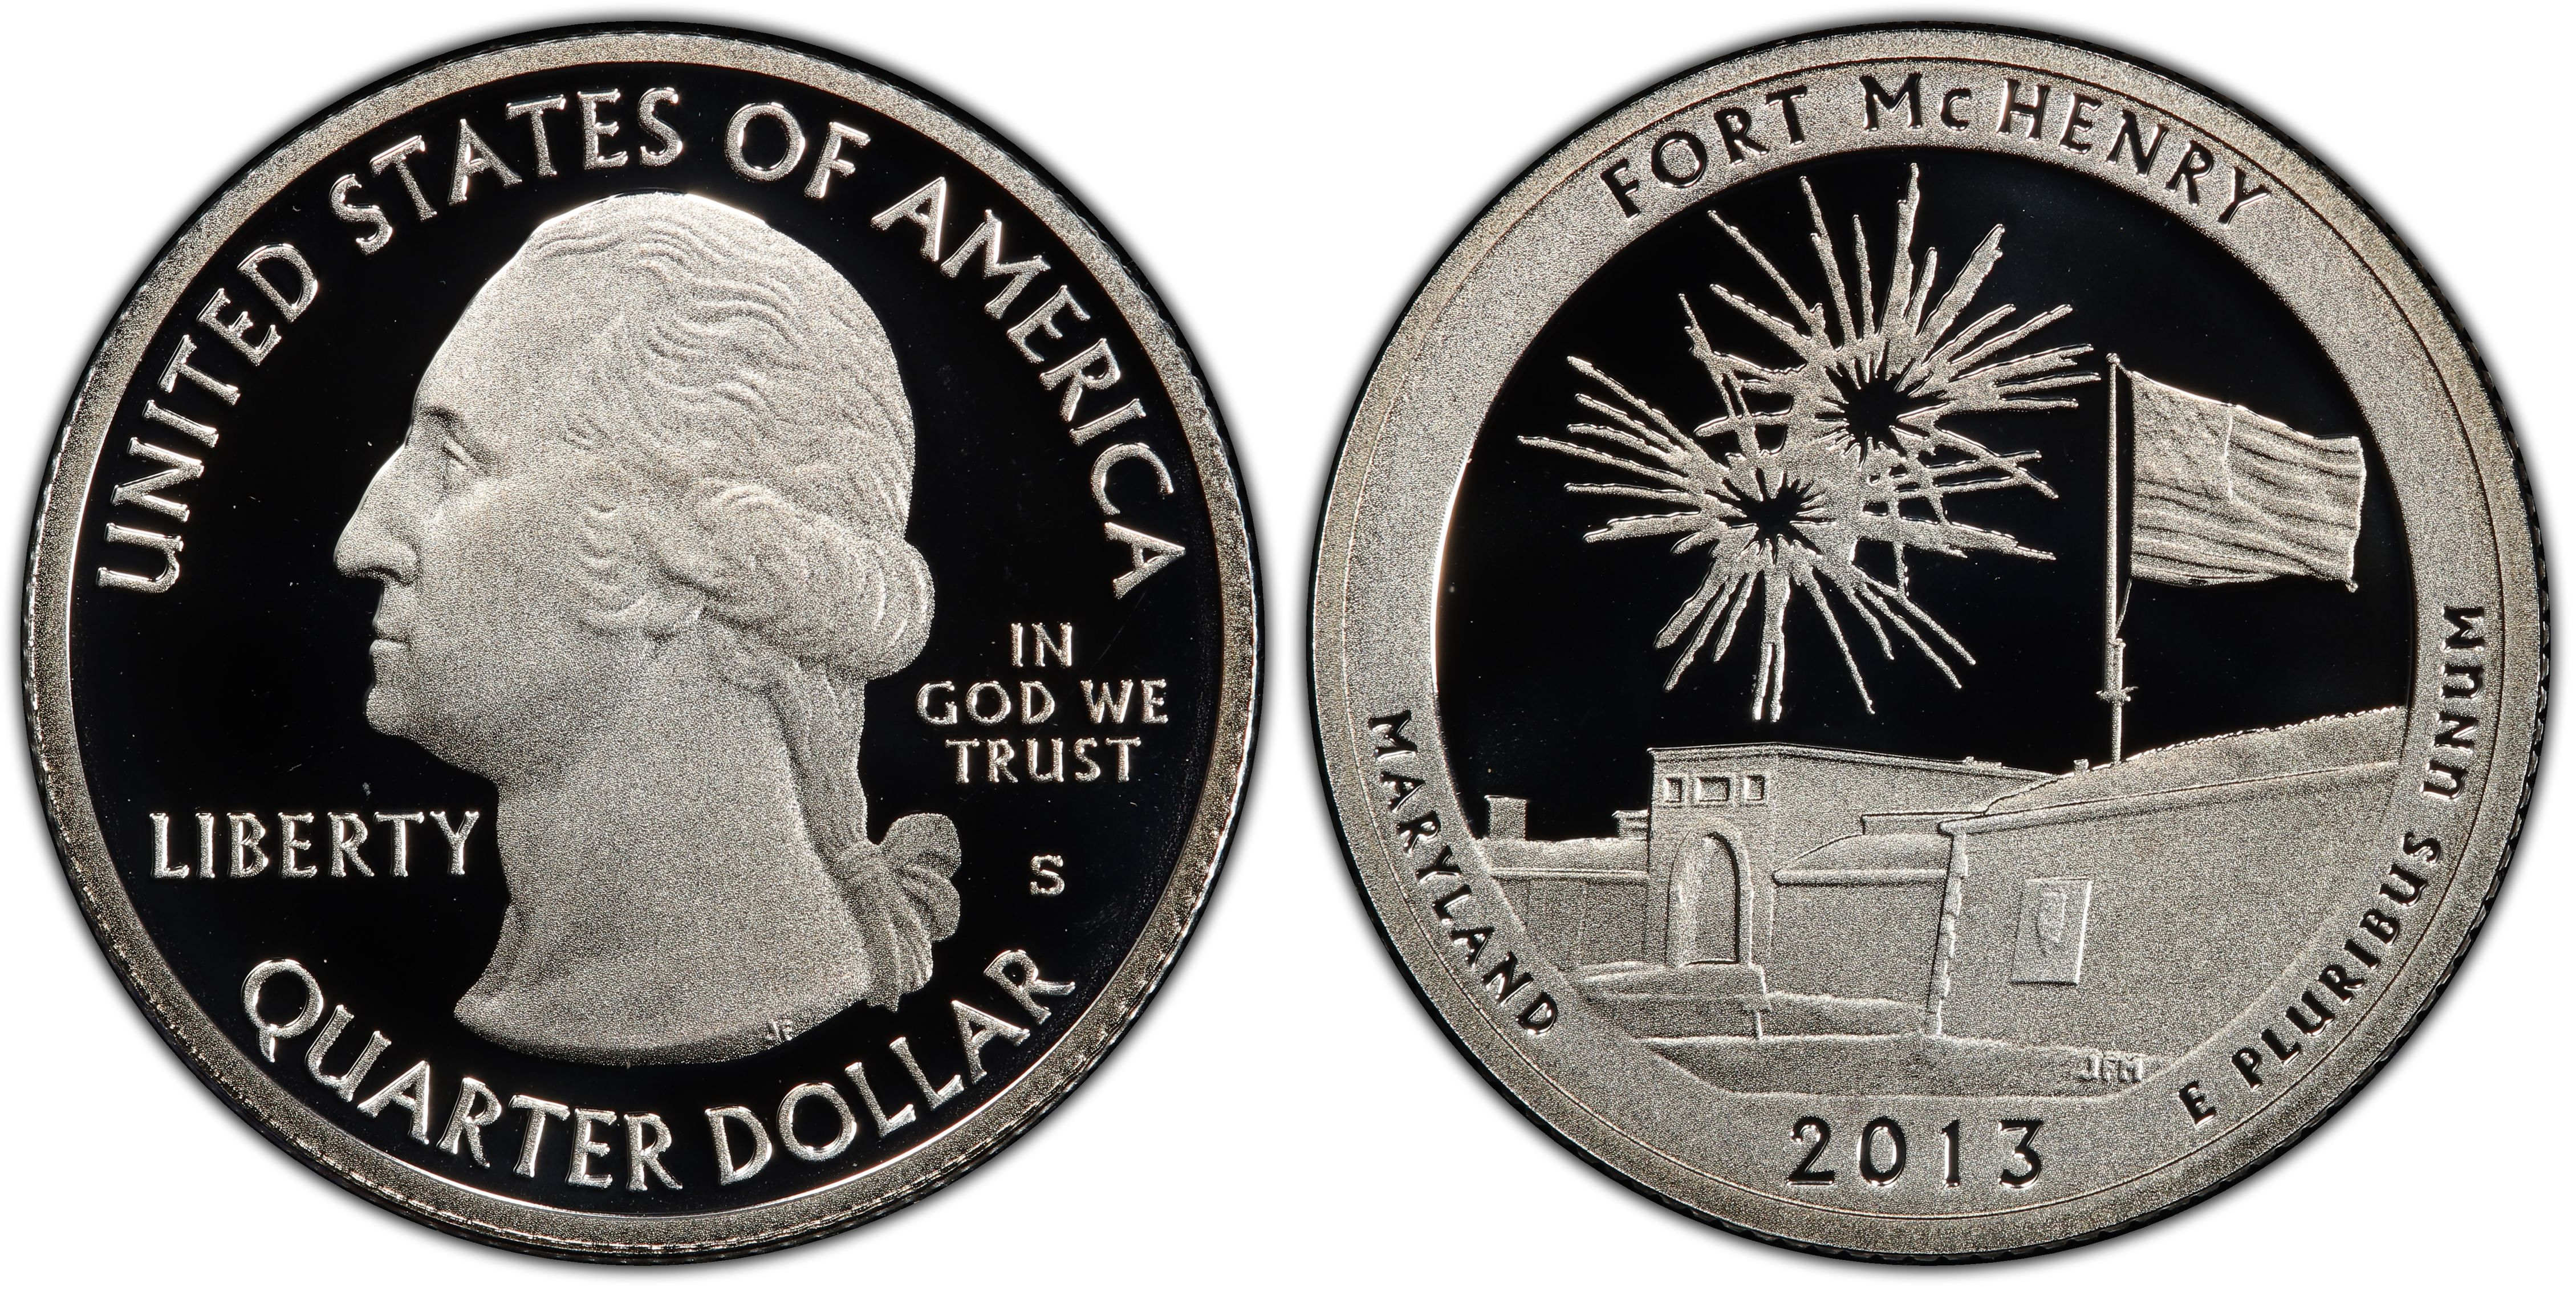 Silver Proof 2013 Fort McHenry Maryland S America the Beautiful Quarter